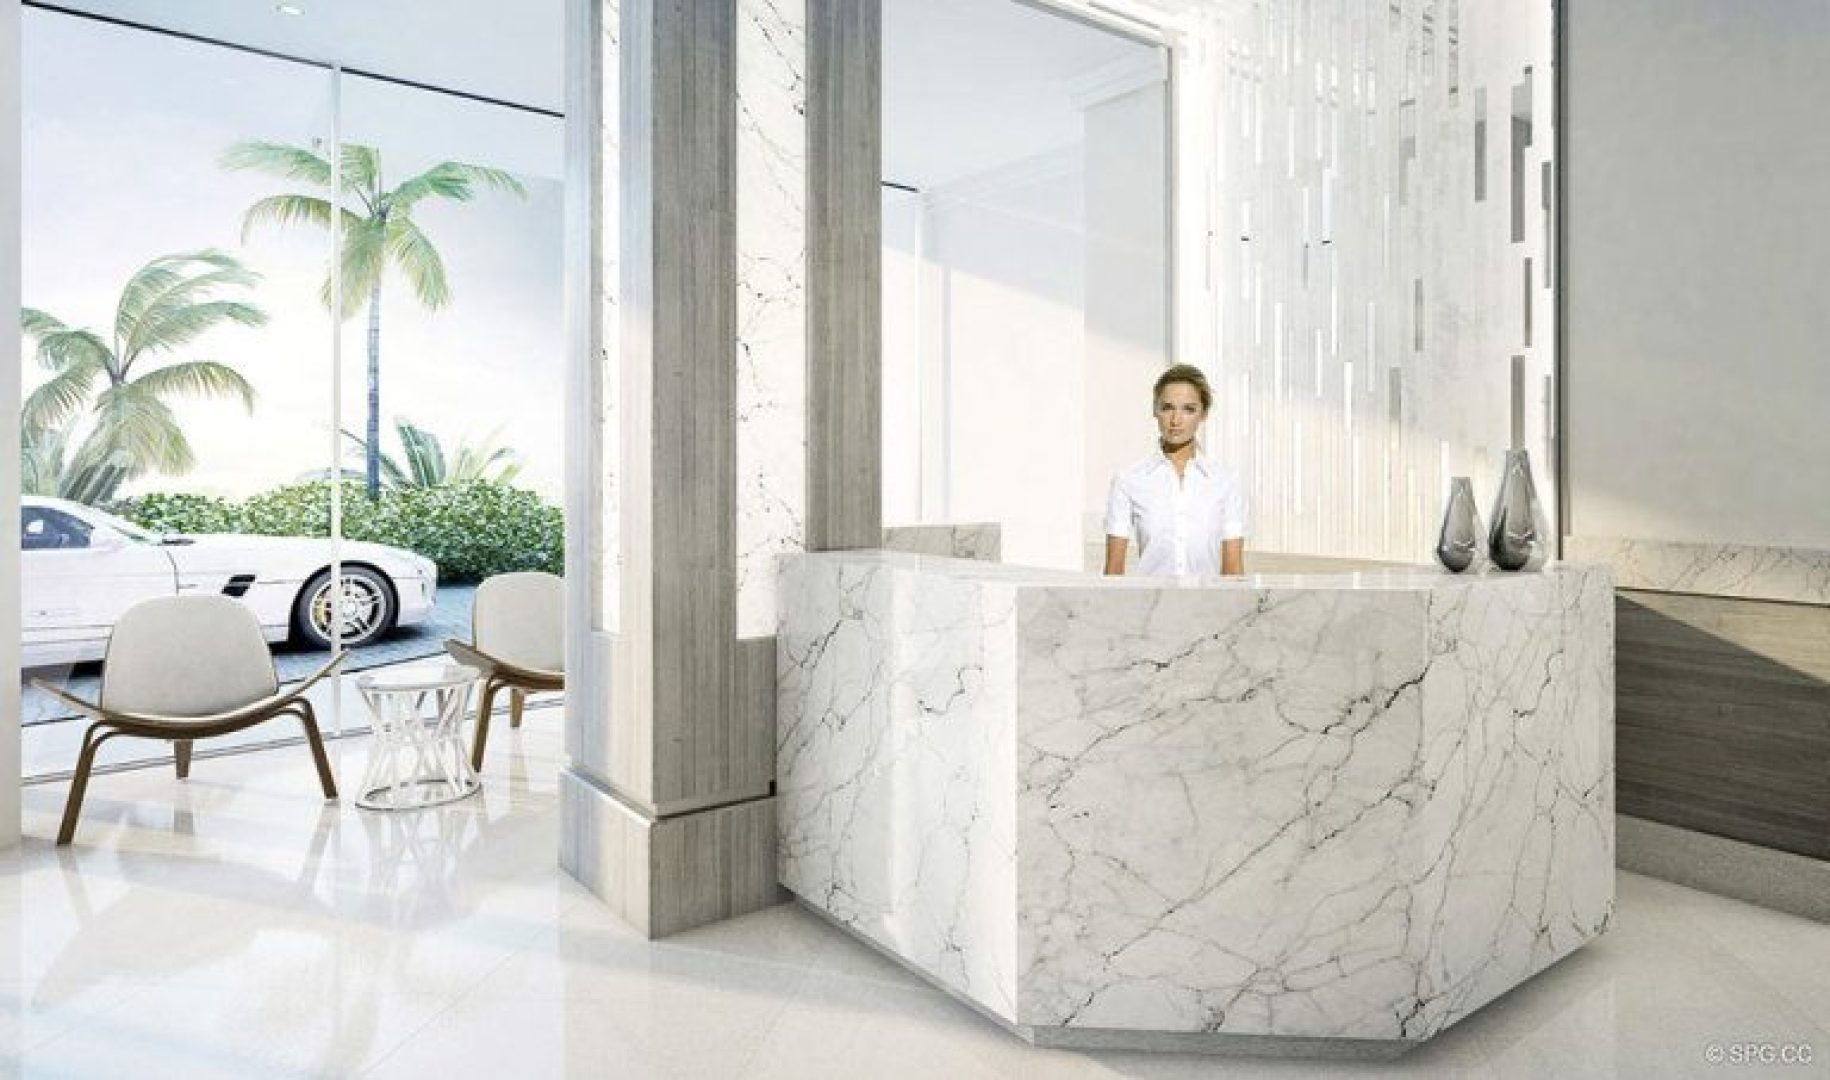 Reception Area in 321 at Water's Edge, Luxury Waterfront Condos in Fort Lauderdale, Florida 33304